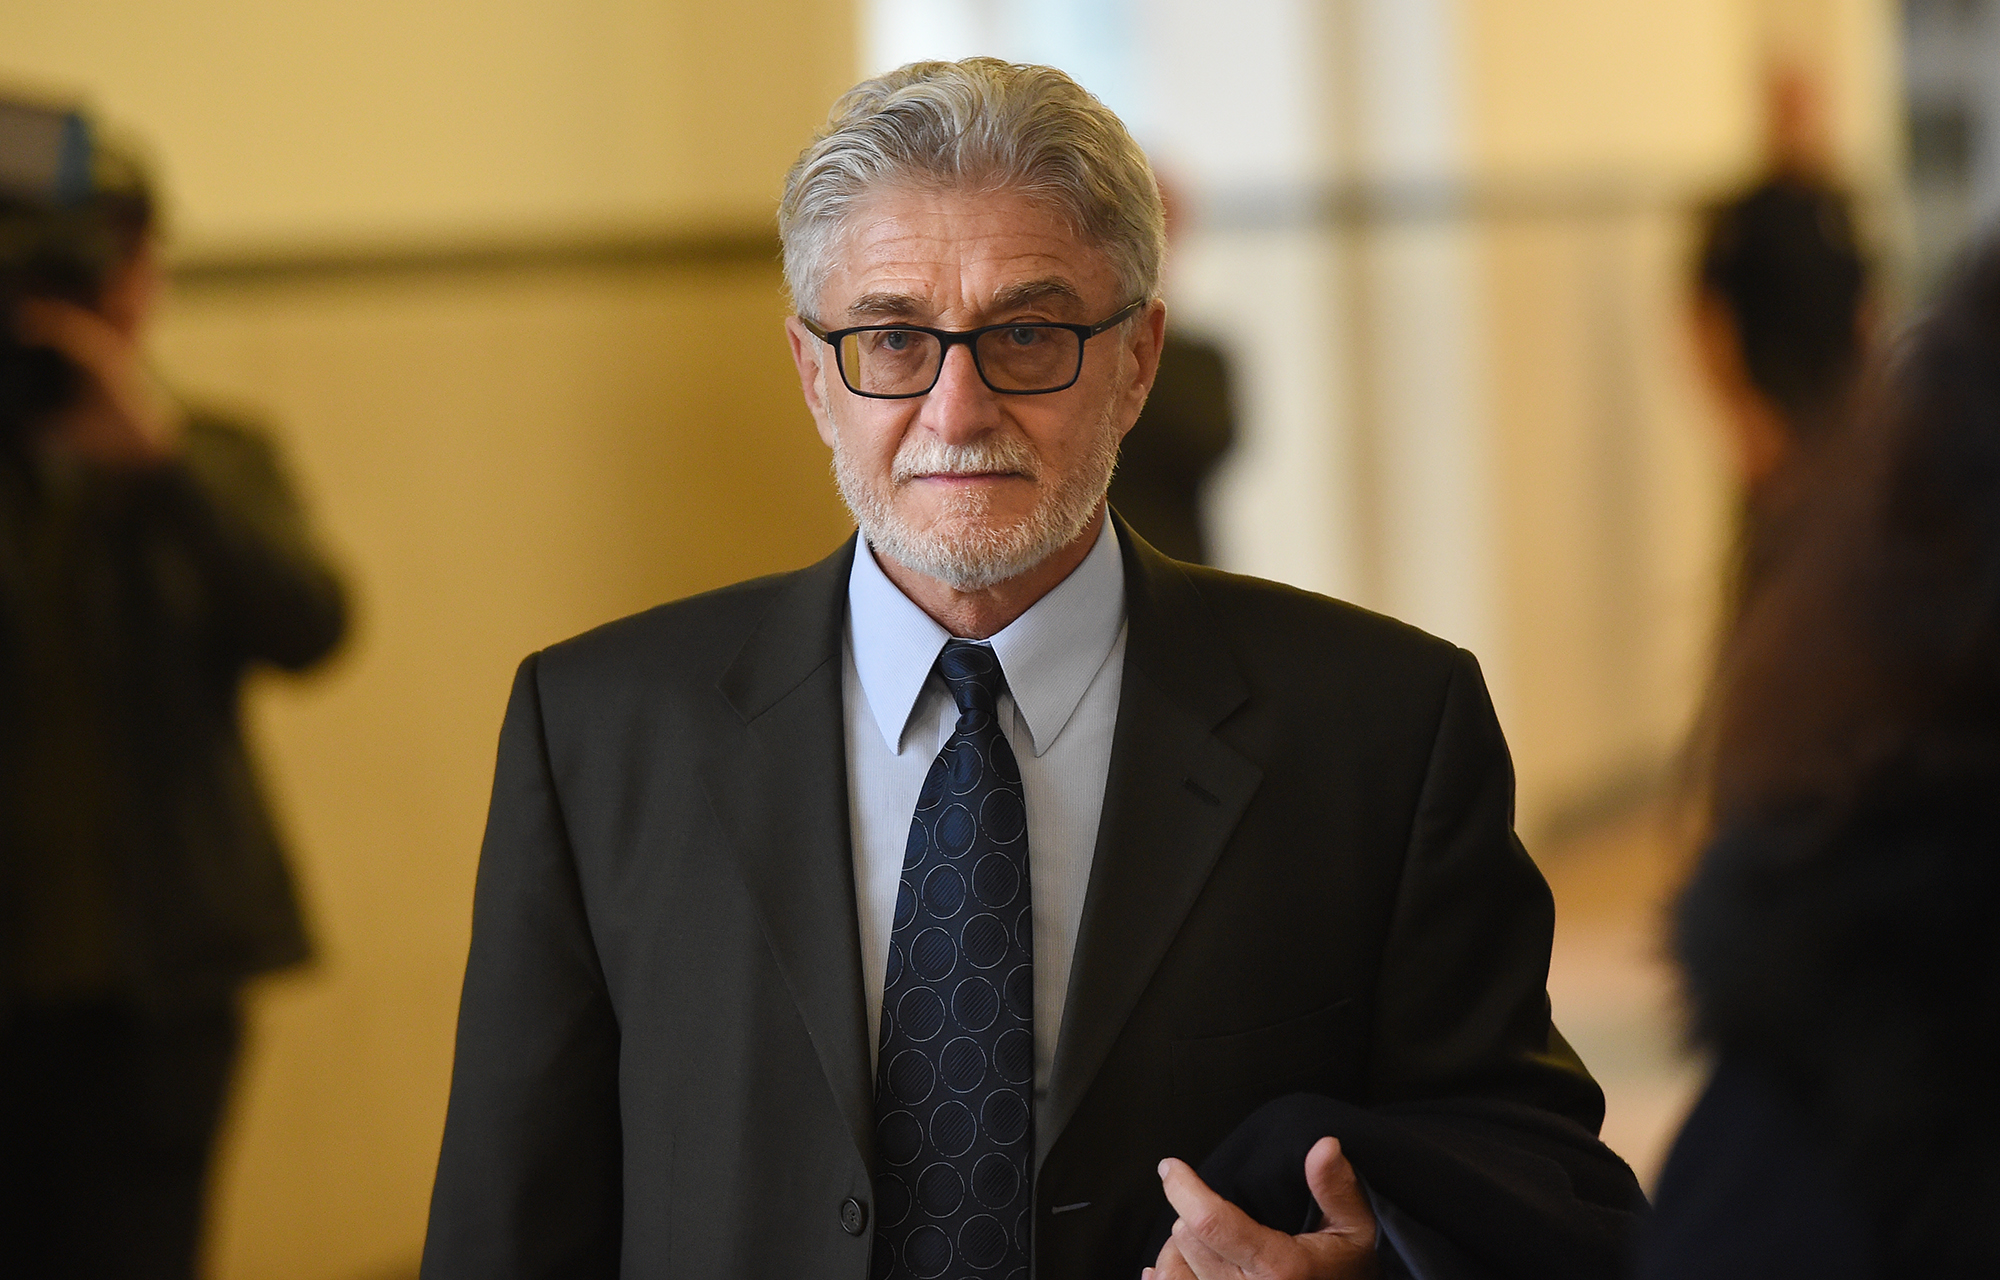 Neulander: I can't get a fair murder retrial in Syracuse. You don't know that yet, court responds